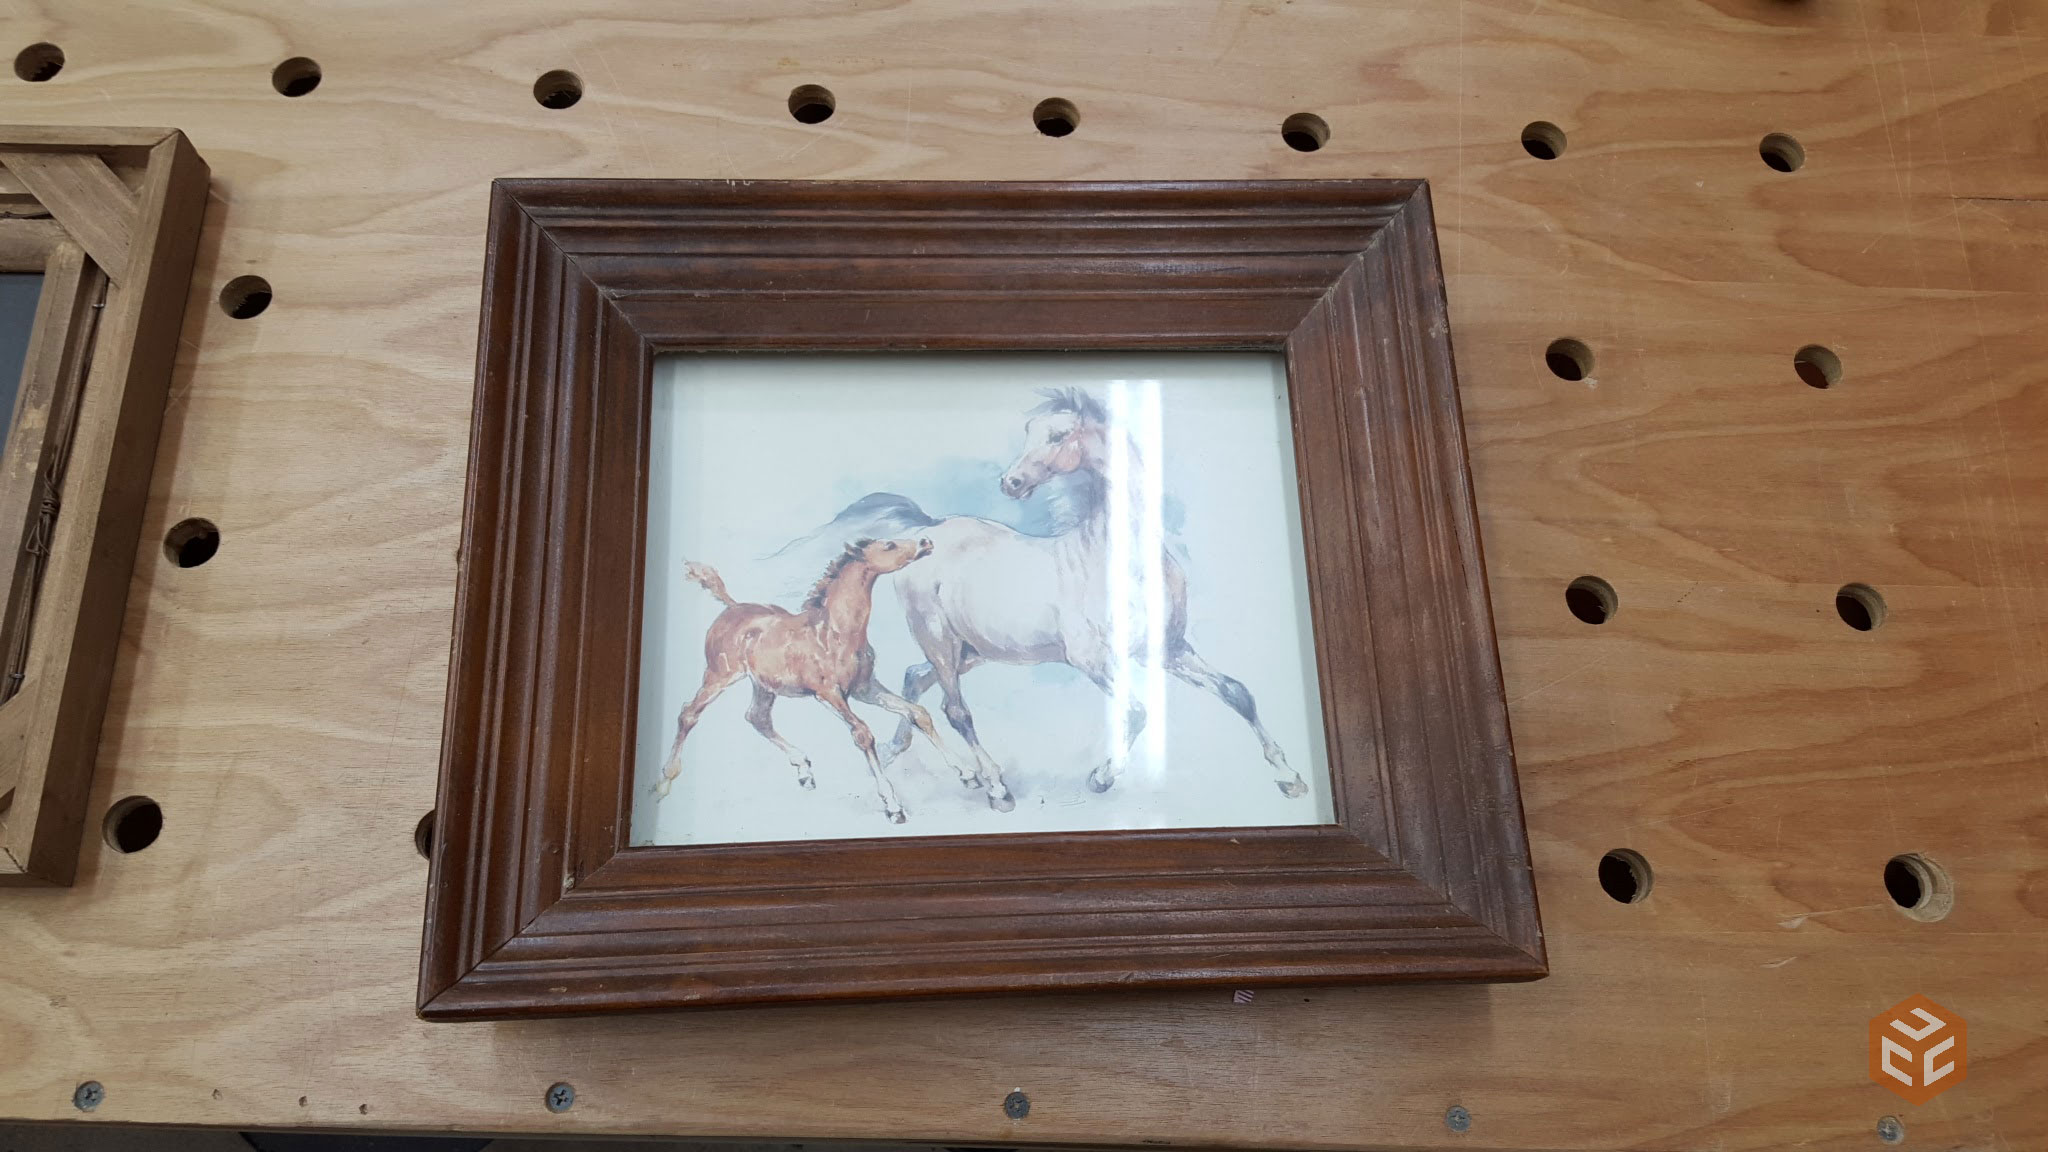 Full Trend Rustic Picture Frames : ... somewhat duplicate this particular frame and add our own touch to it